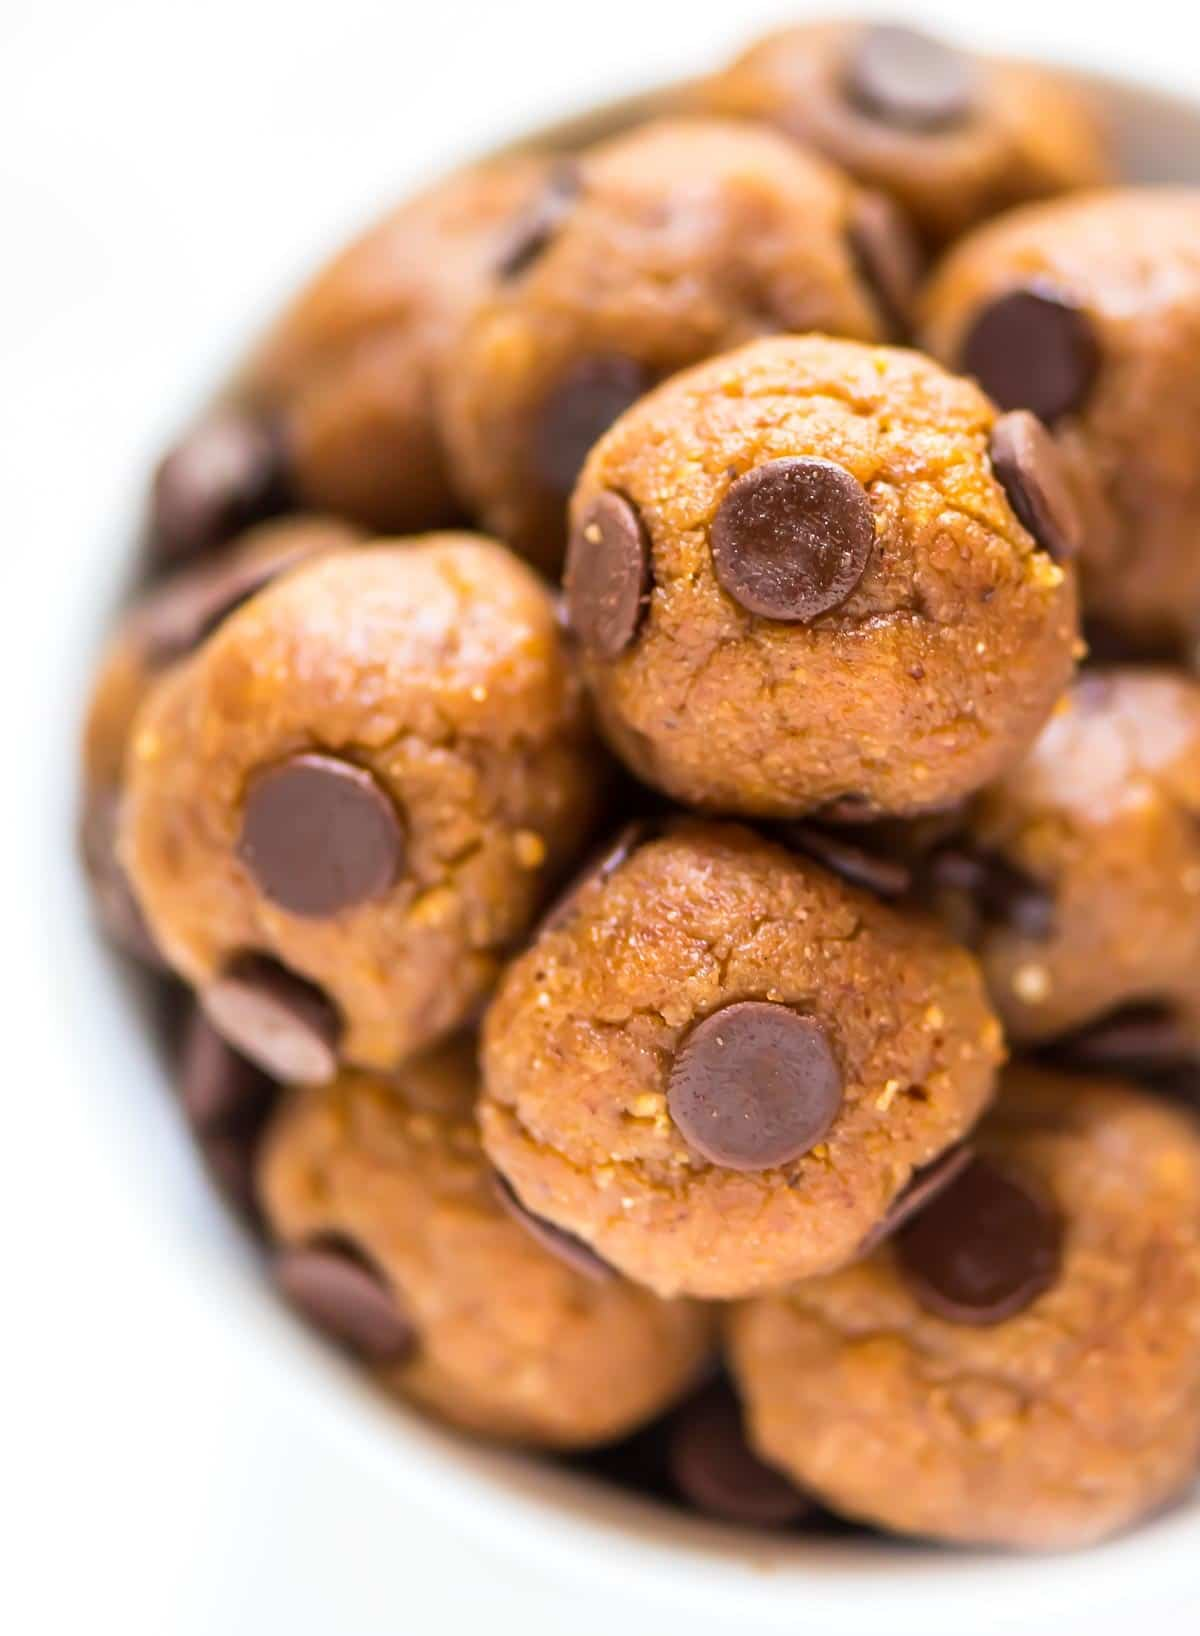 Paleo Protein Balls that taste EXACTLY like chocolate chip cookie dough! EASY recipe that's low carb, high in protein and fiber, and gluten free. @wellplated